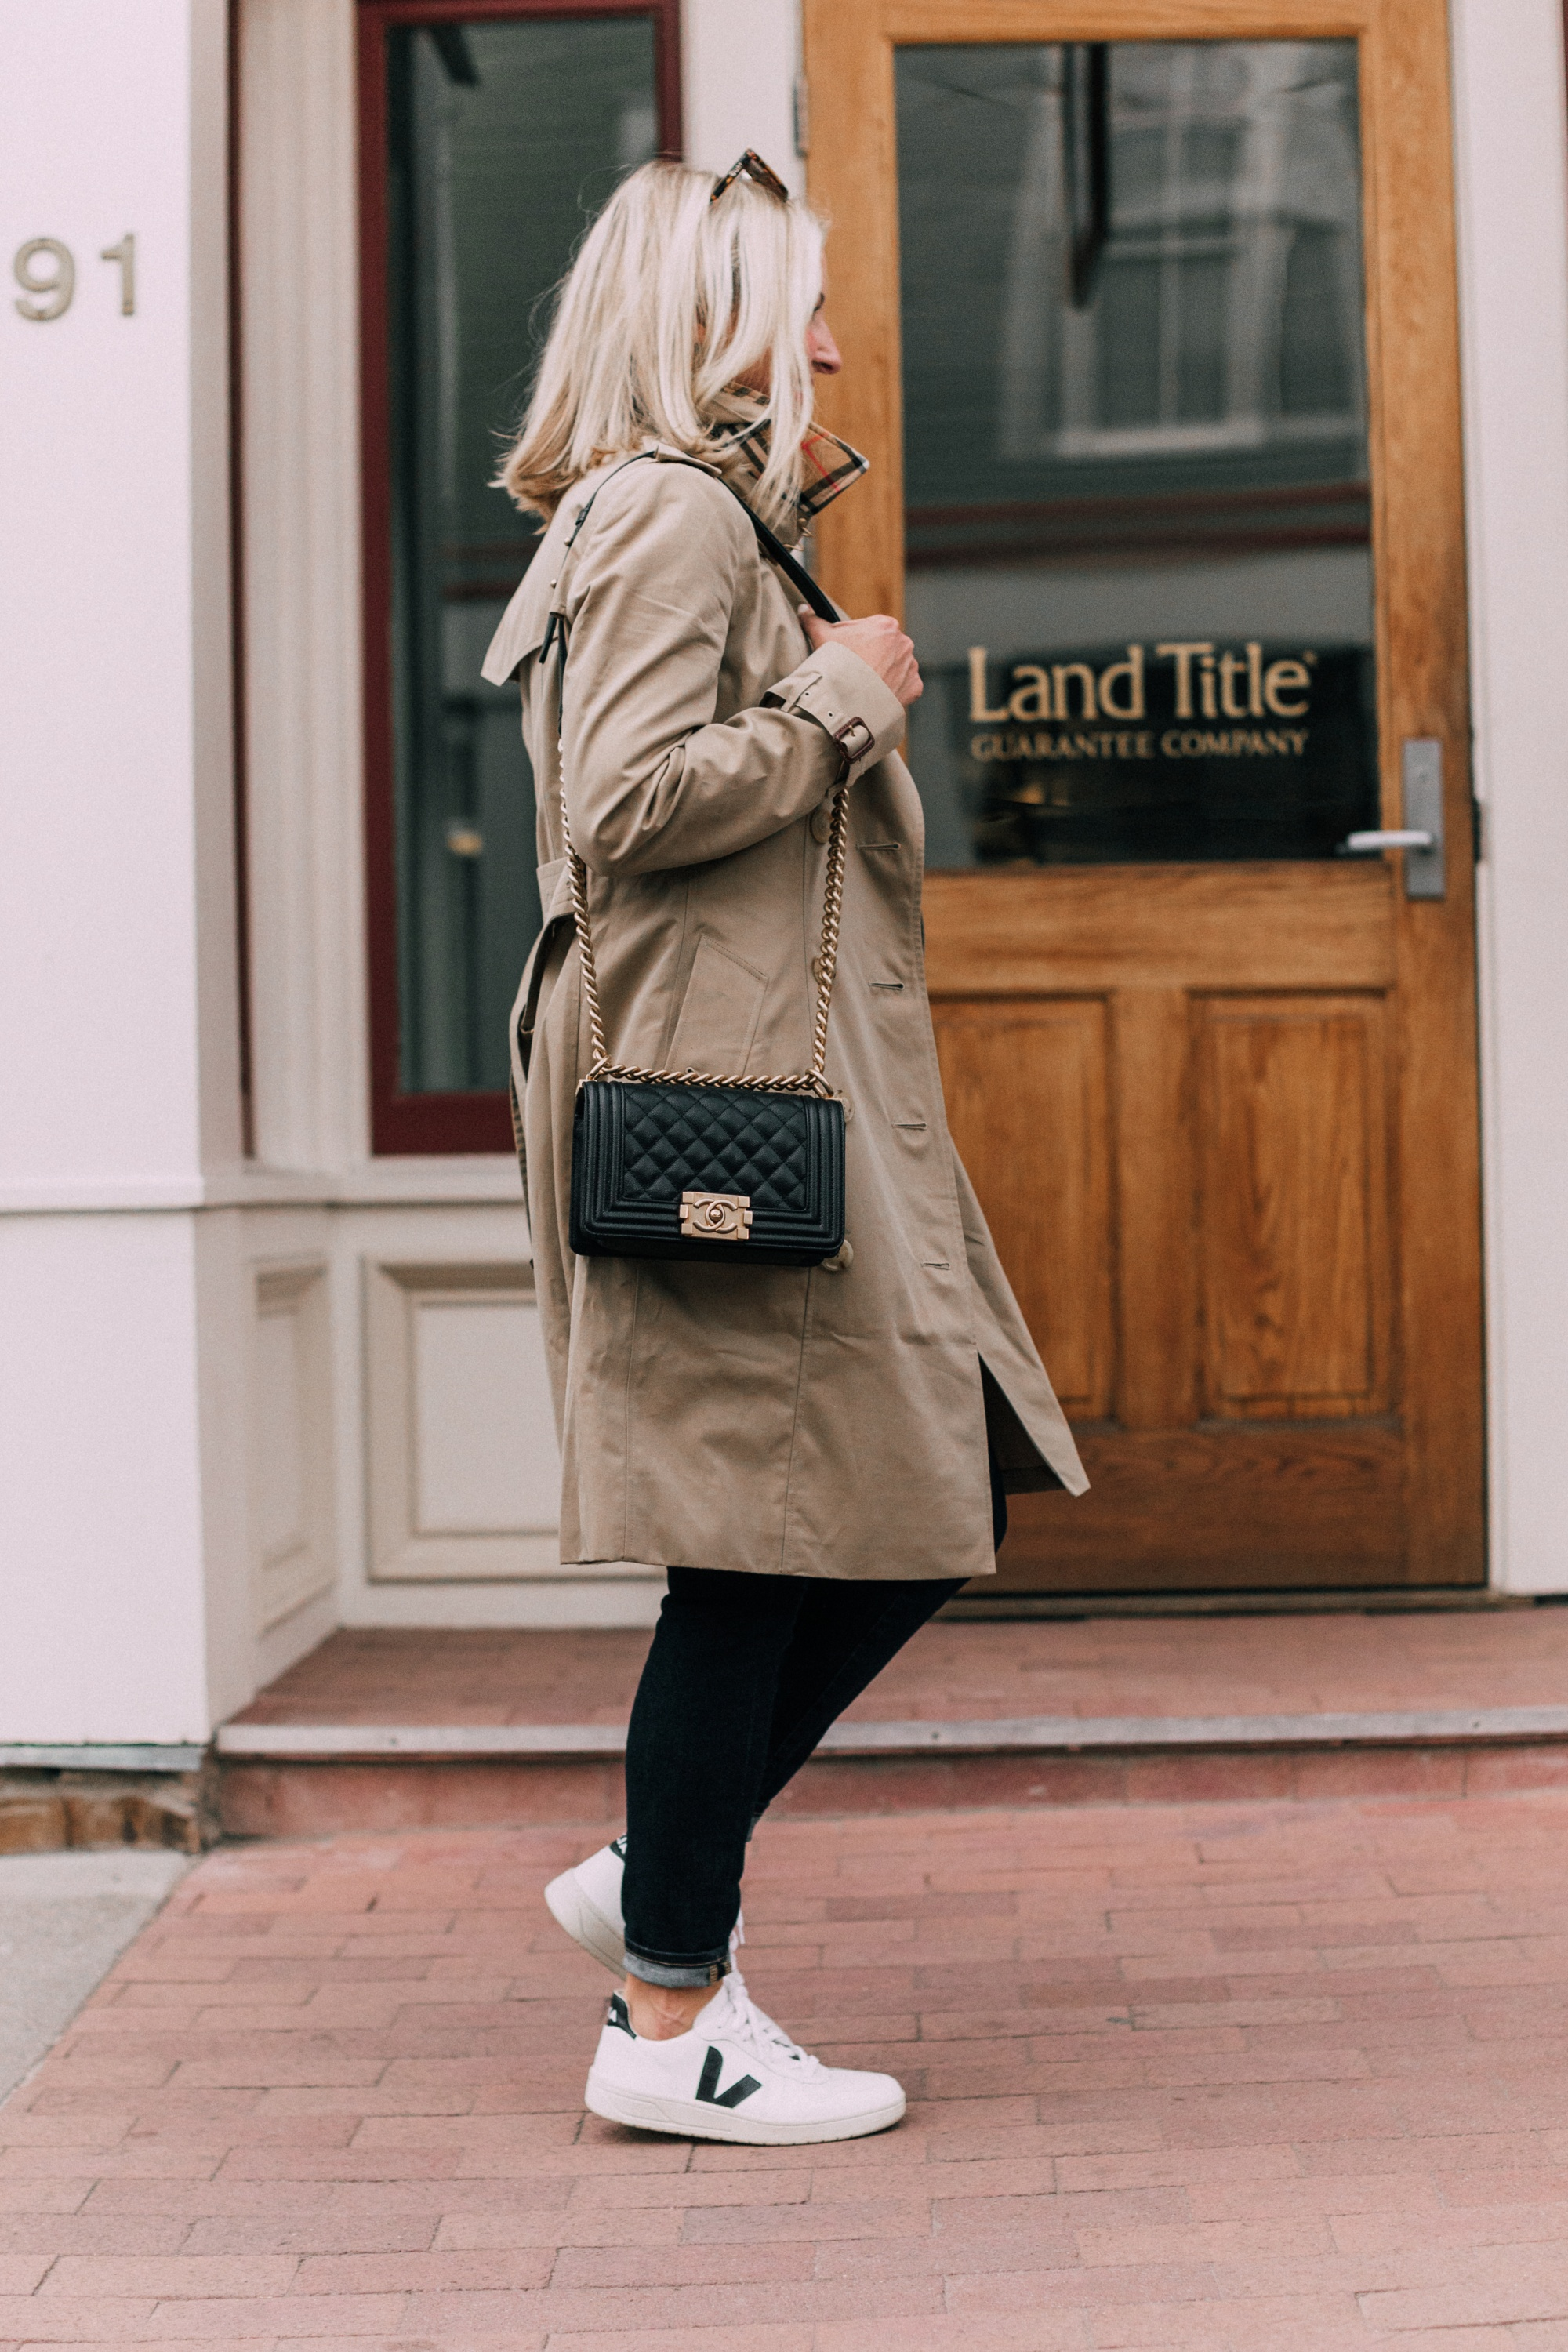 Burberry Chelsea Slim Fit Heritage trench coat with blue jeans veja v-10 white sneakers chanel boy bag outfit